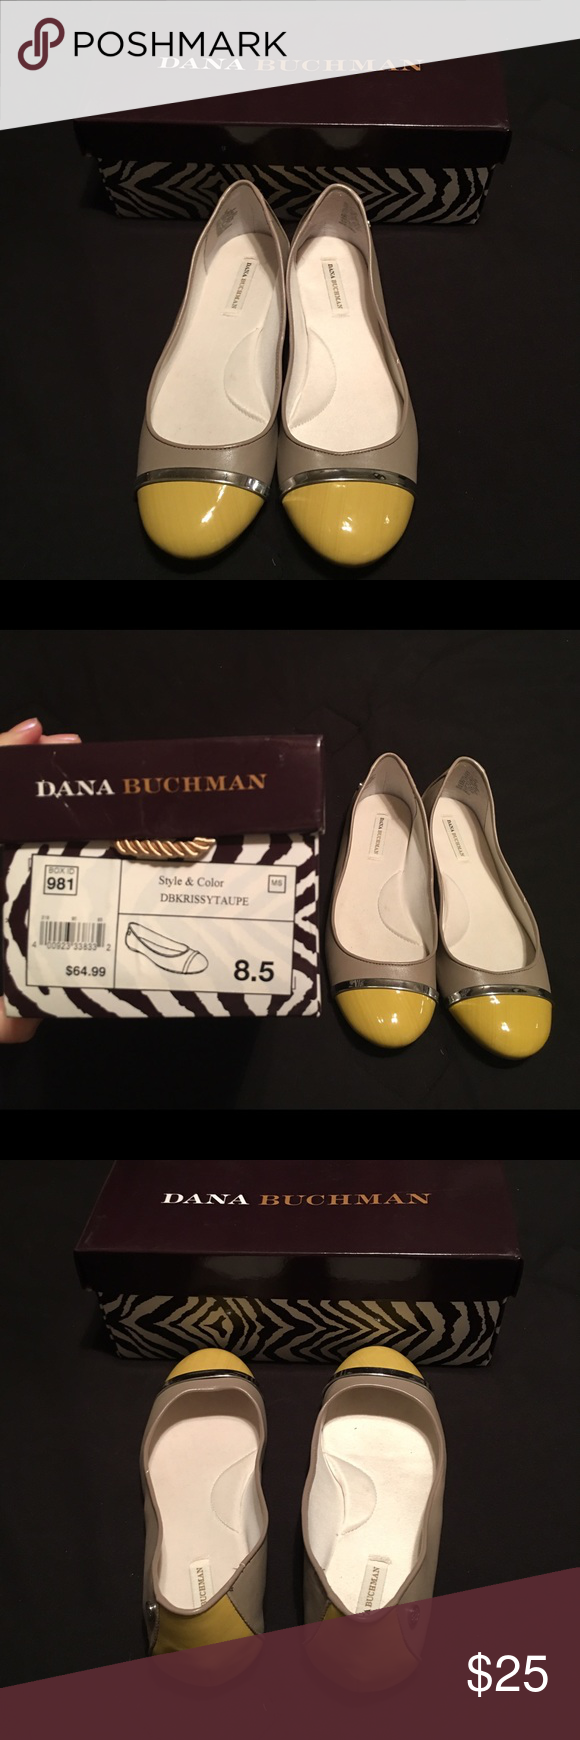 NWOT! Cute Flats! Never worn flats. Grey and Yellow. Size 8.5. Shoes